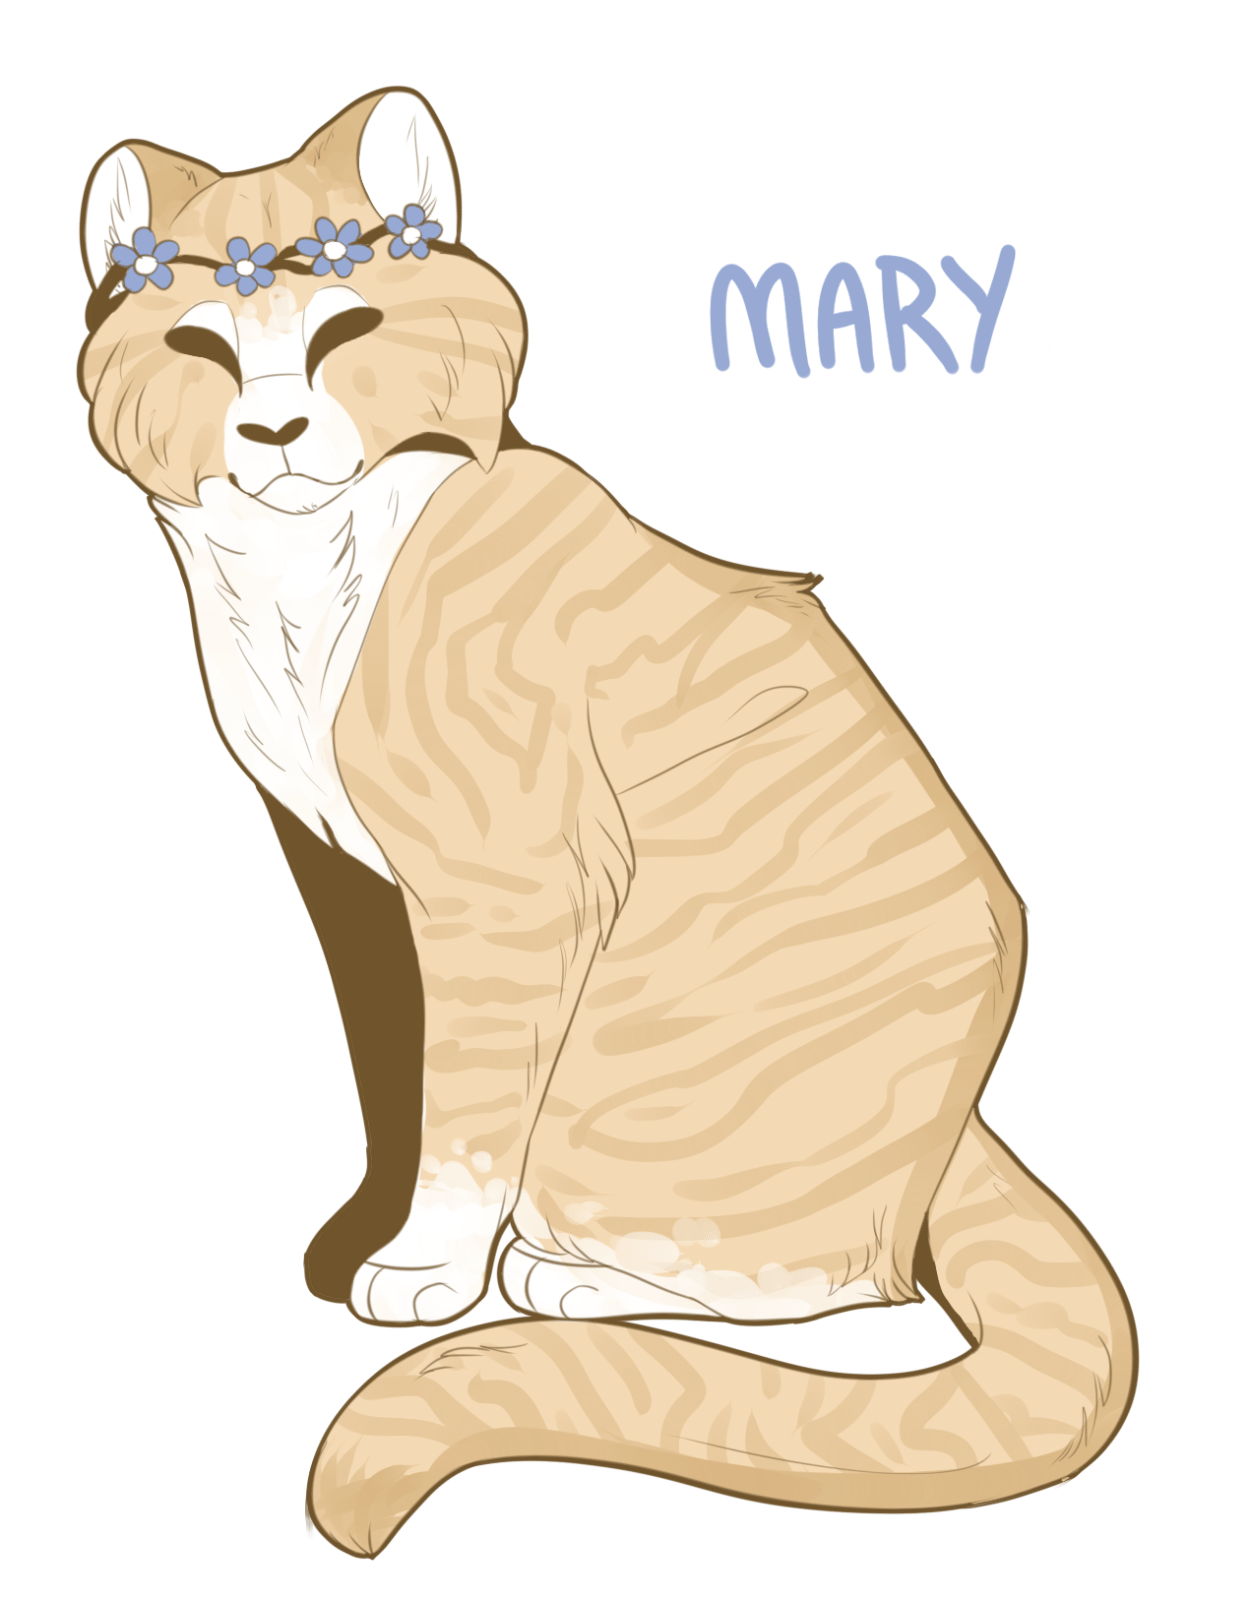 Portrait of Mary the Cat by Felined